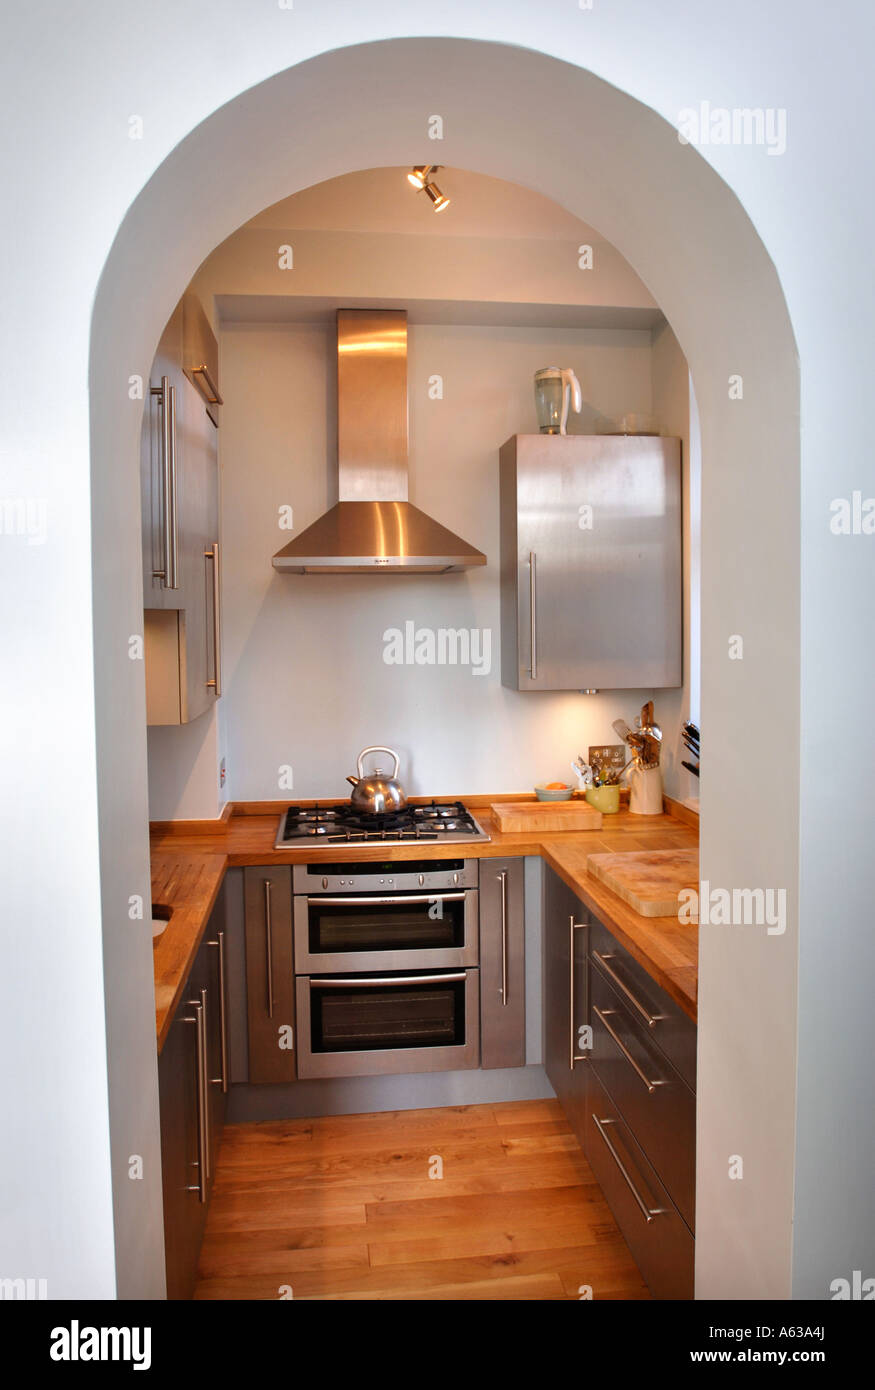 Small Fitted Kitchen A Small Fitted Kitchen Uk Stock Photo Royalty Free Image